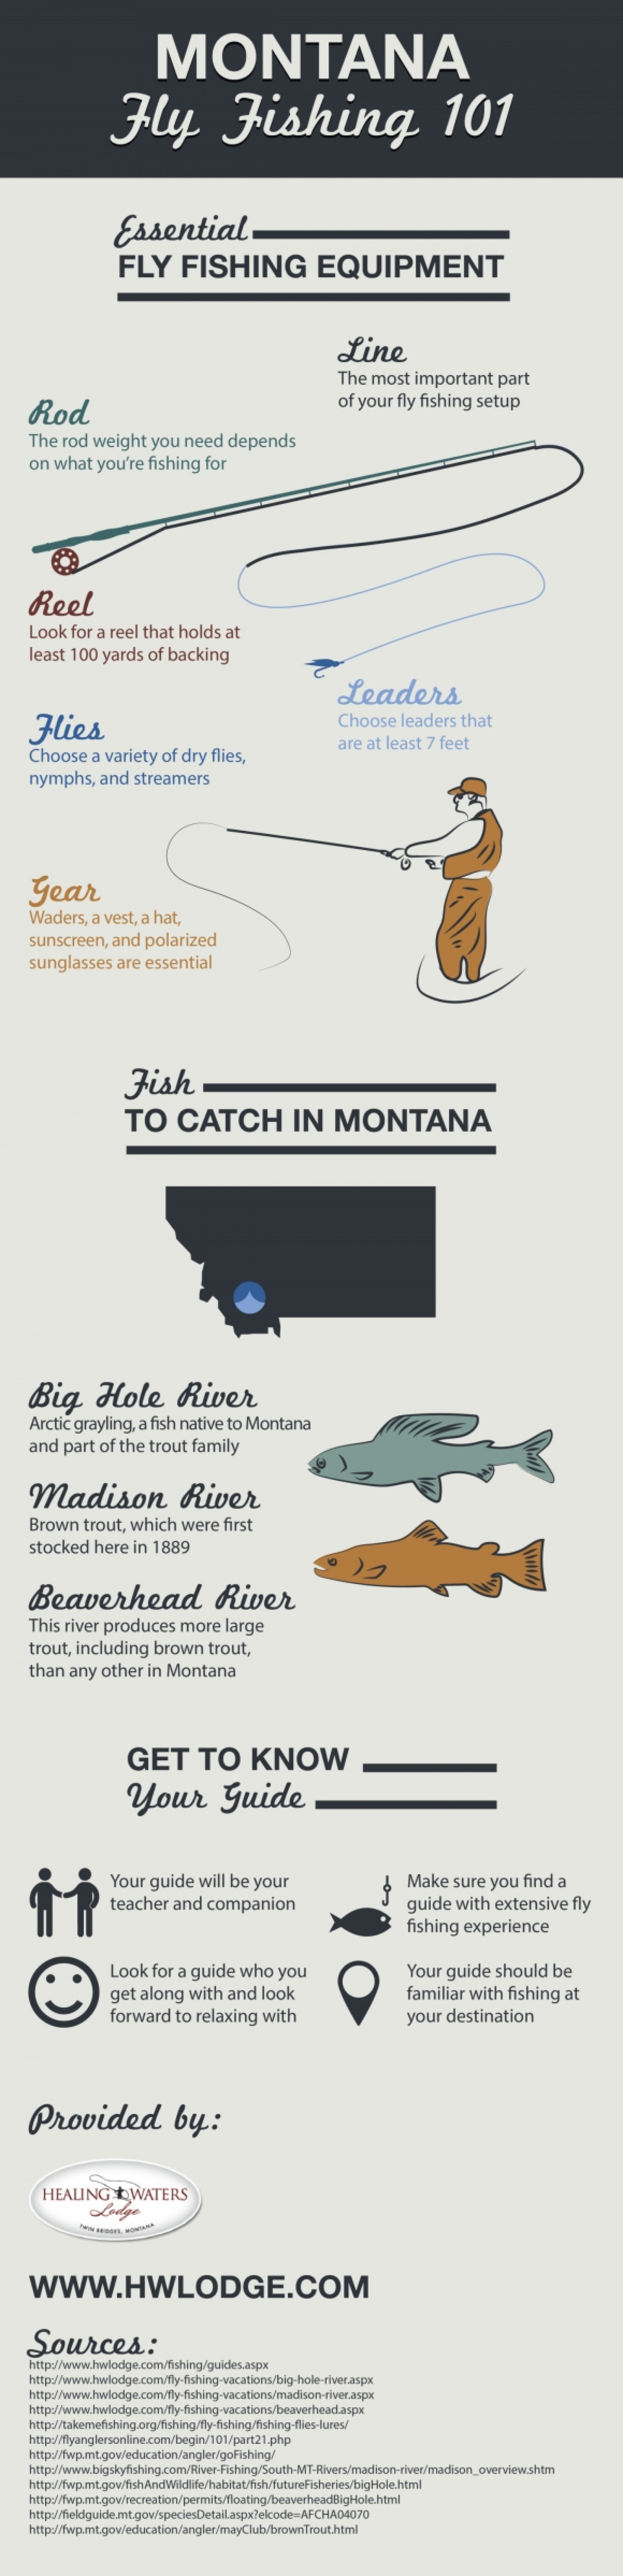 MONTANA FLY FISHING 101  Infographic